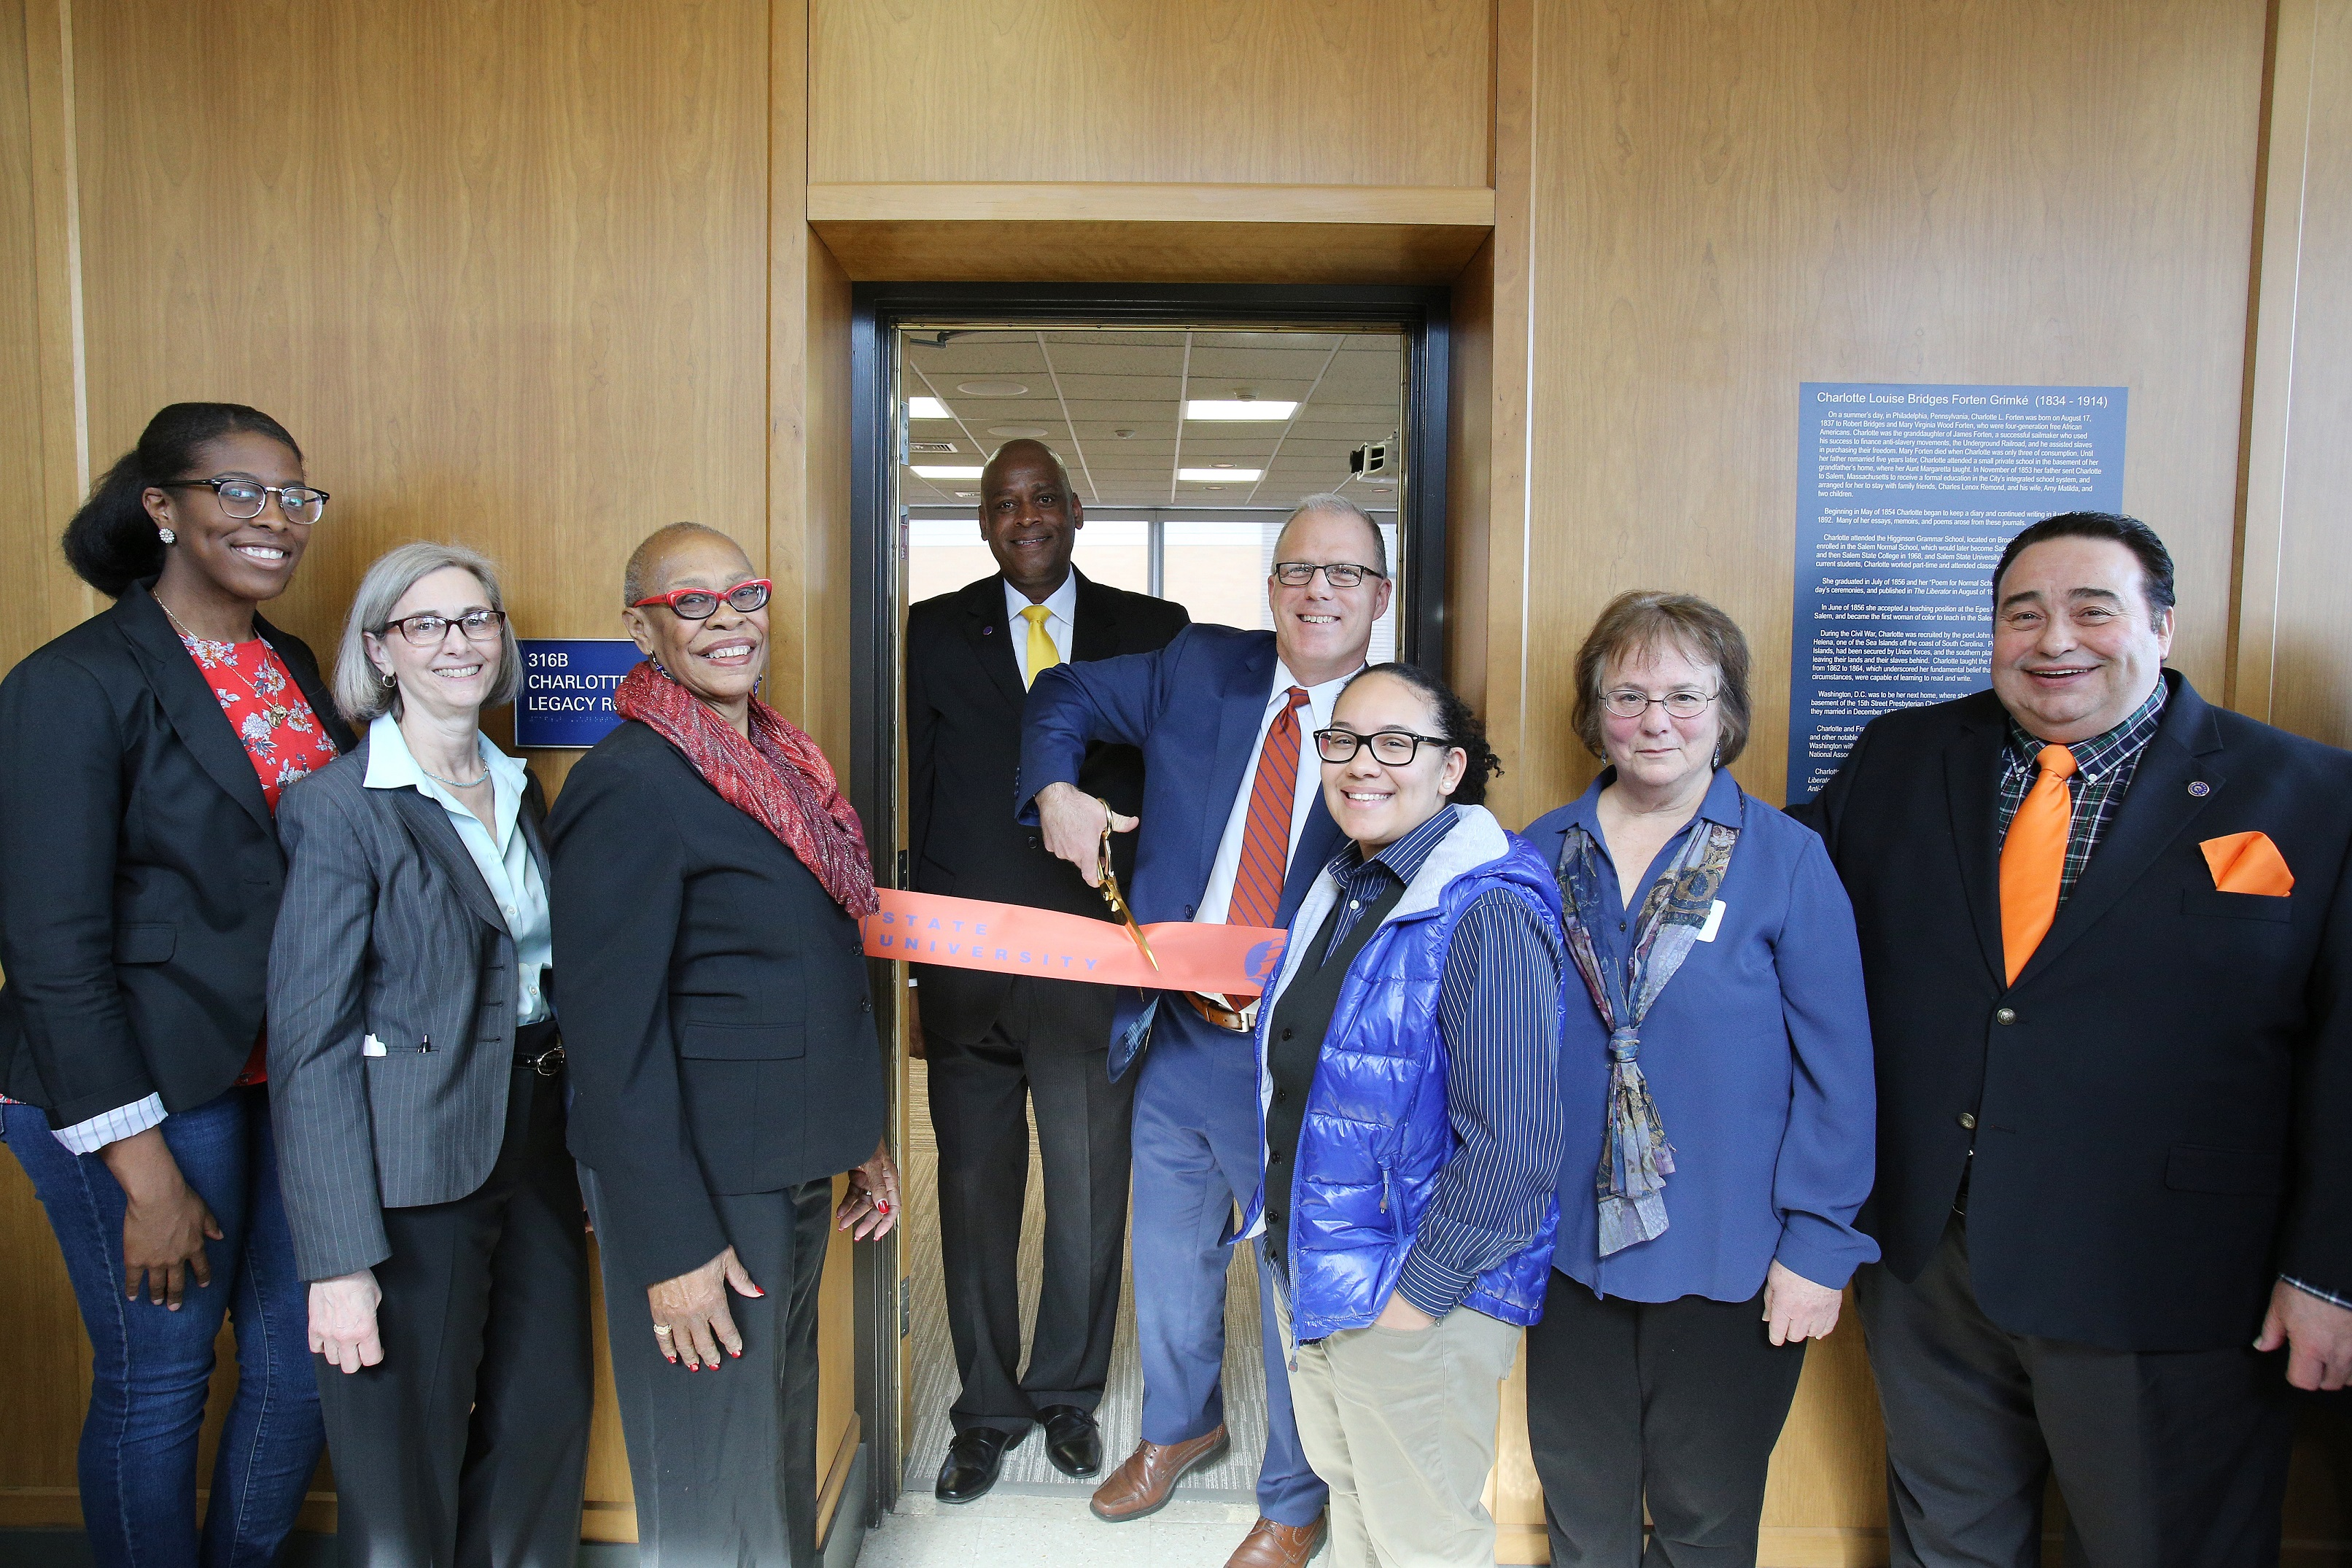 Charlotte Forten Legacy Room Ribbon Cutting